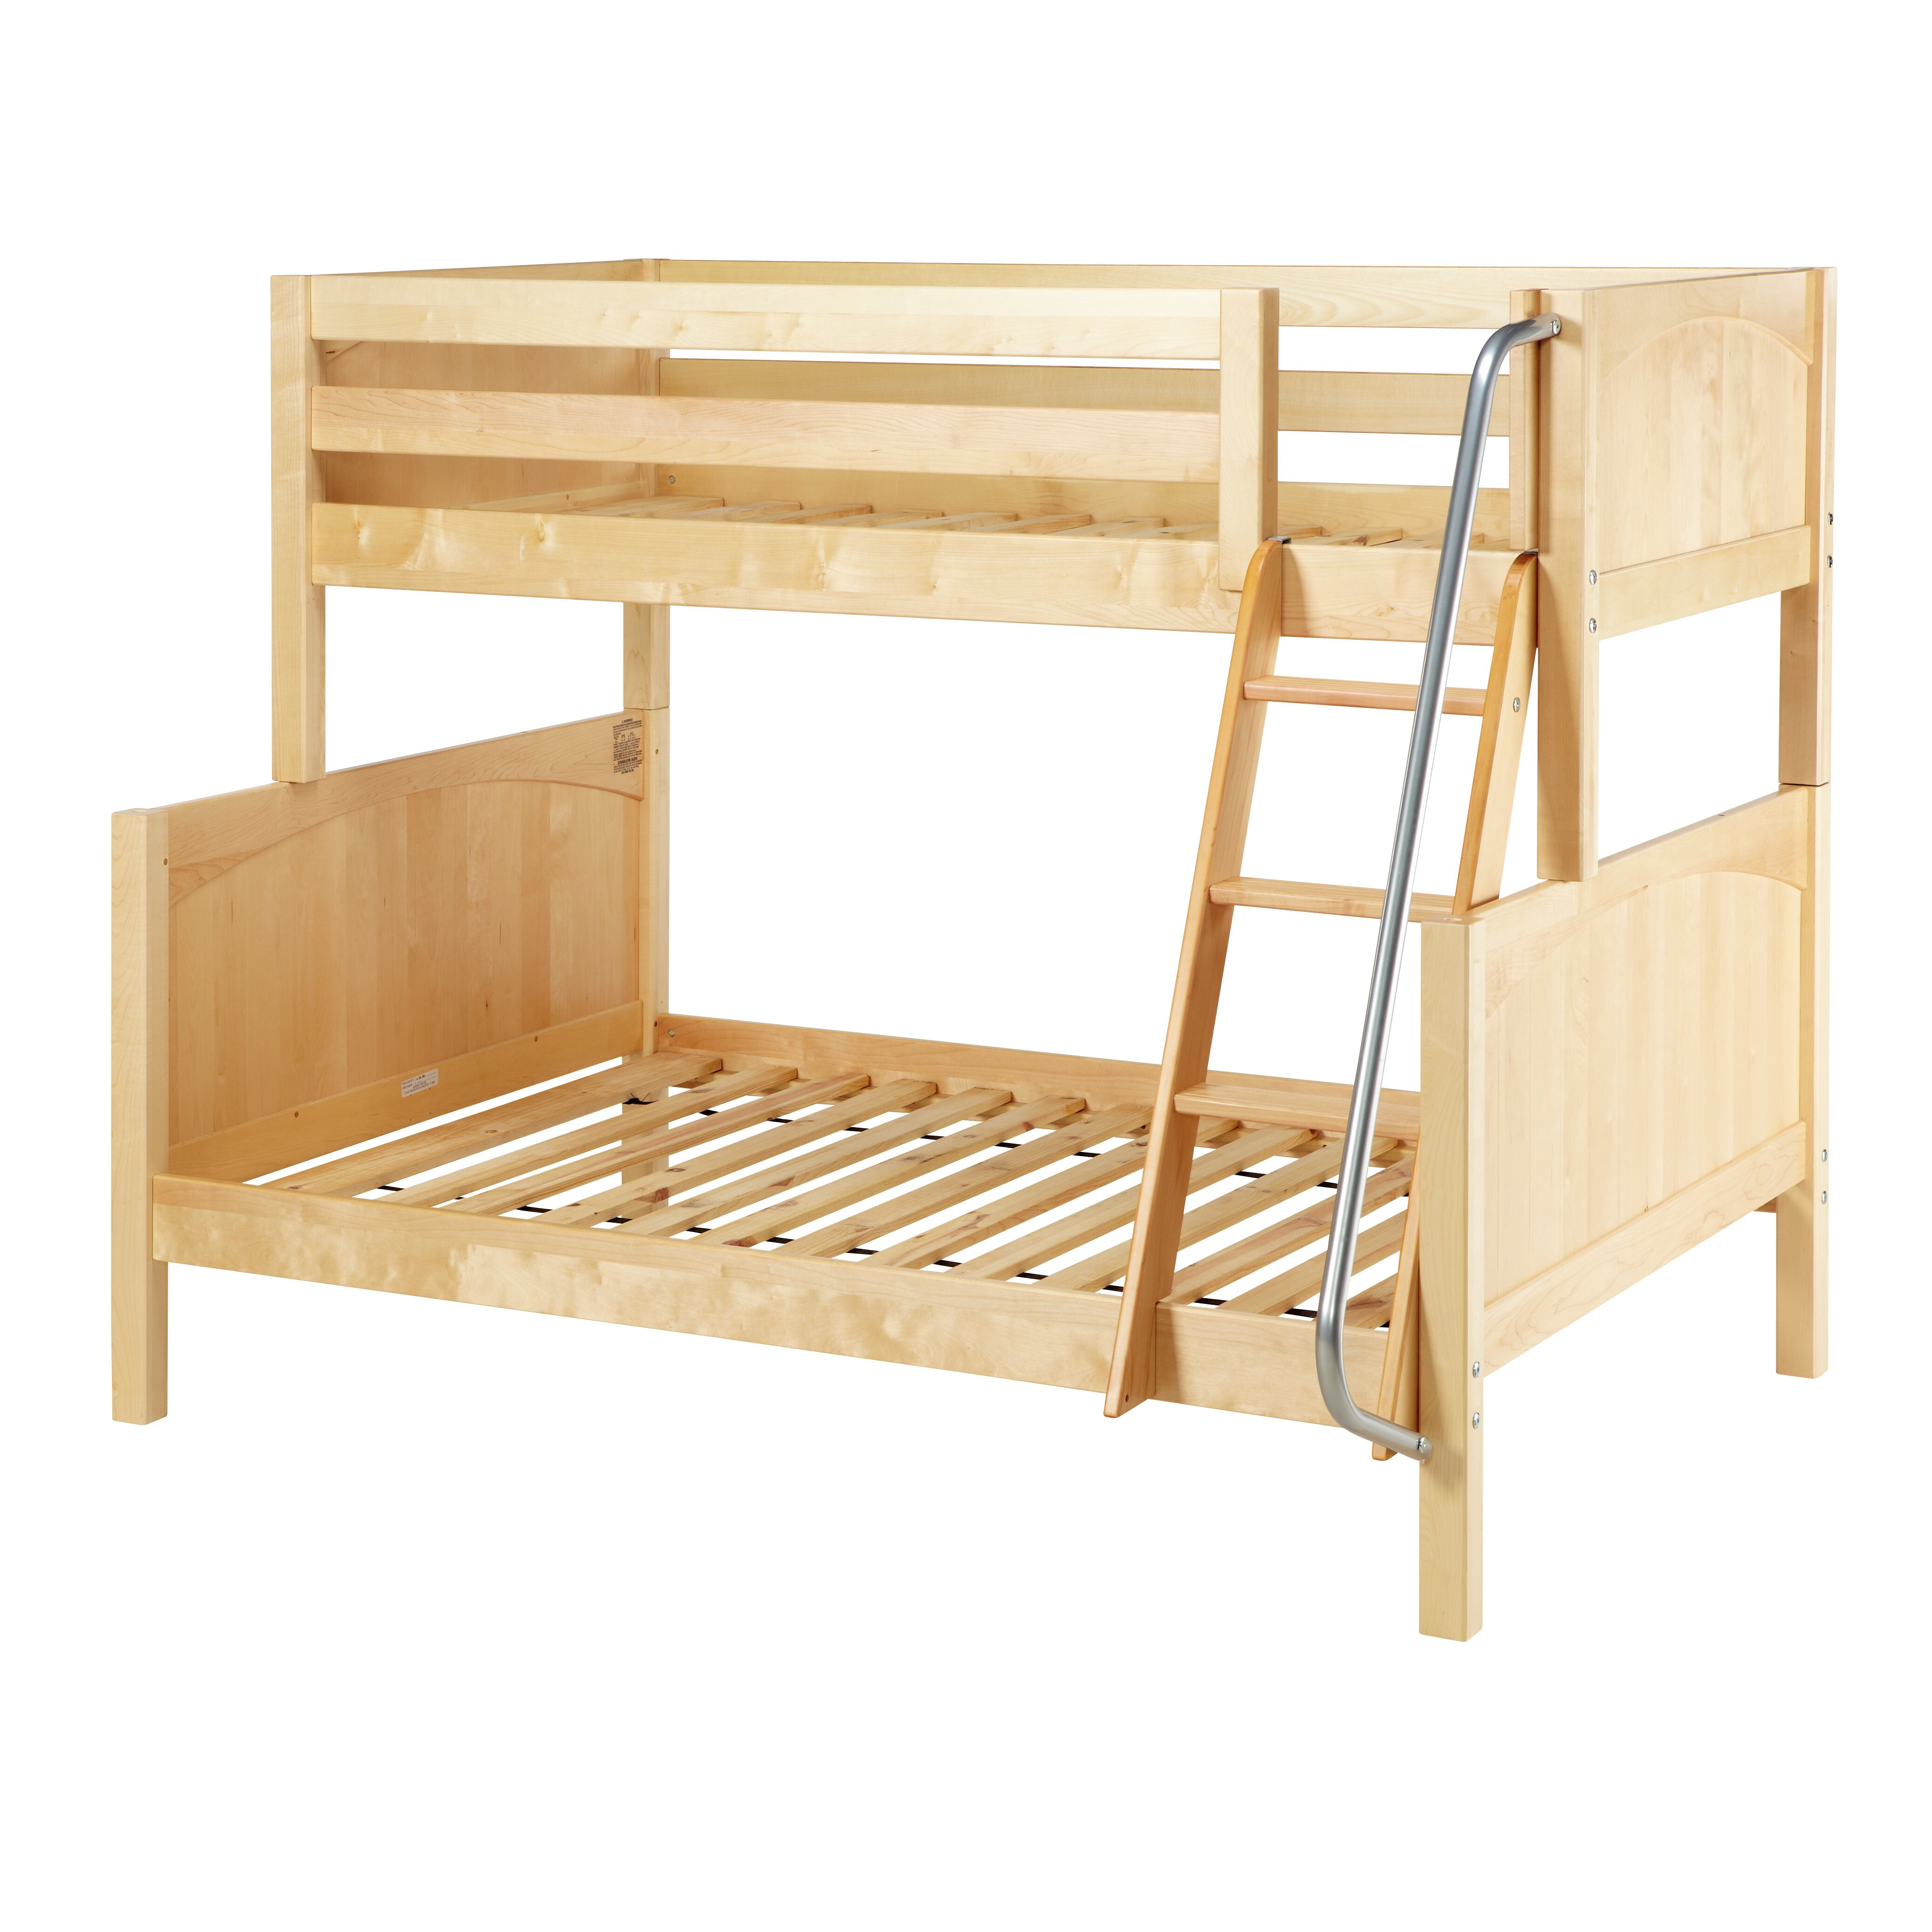 Slope twin over full bunk bed wayfair for Twin over full bunk bed